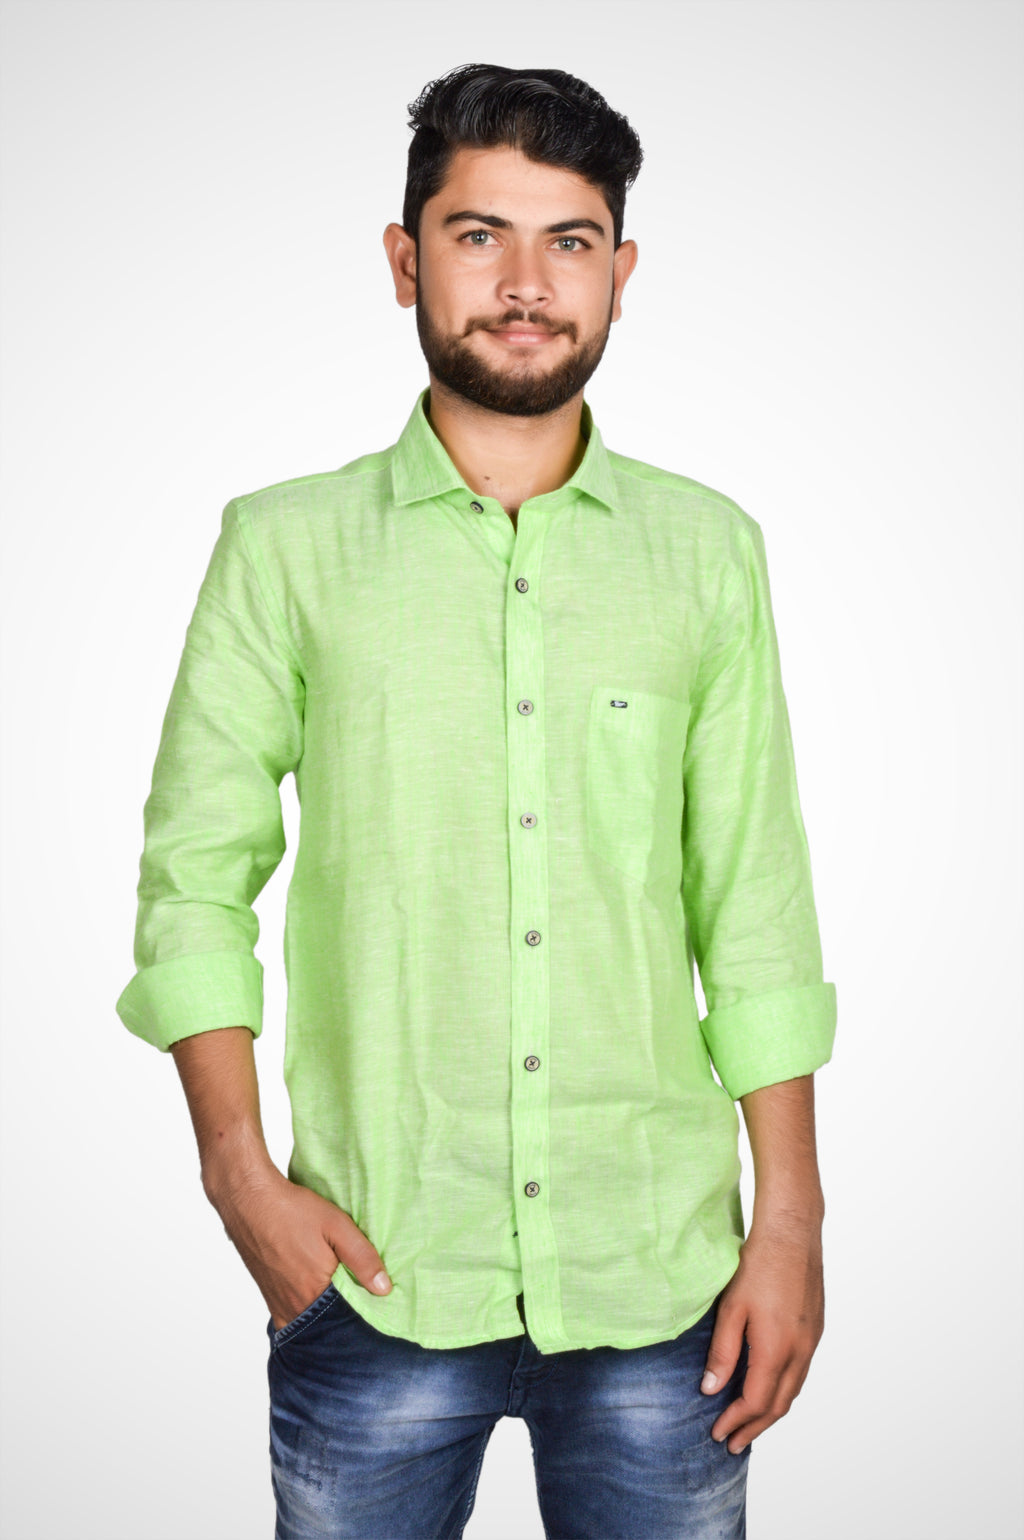 Zerox Men's Plain Pure Linen Full Sleeves Regular Fit Formal Shirt (Green) By Indians Boutique